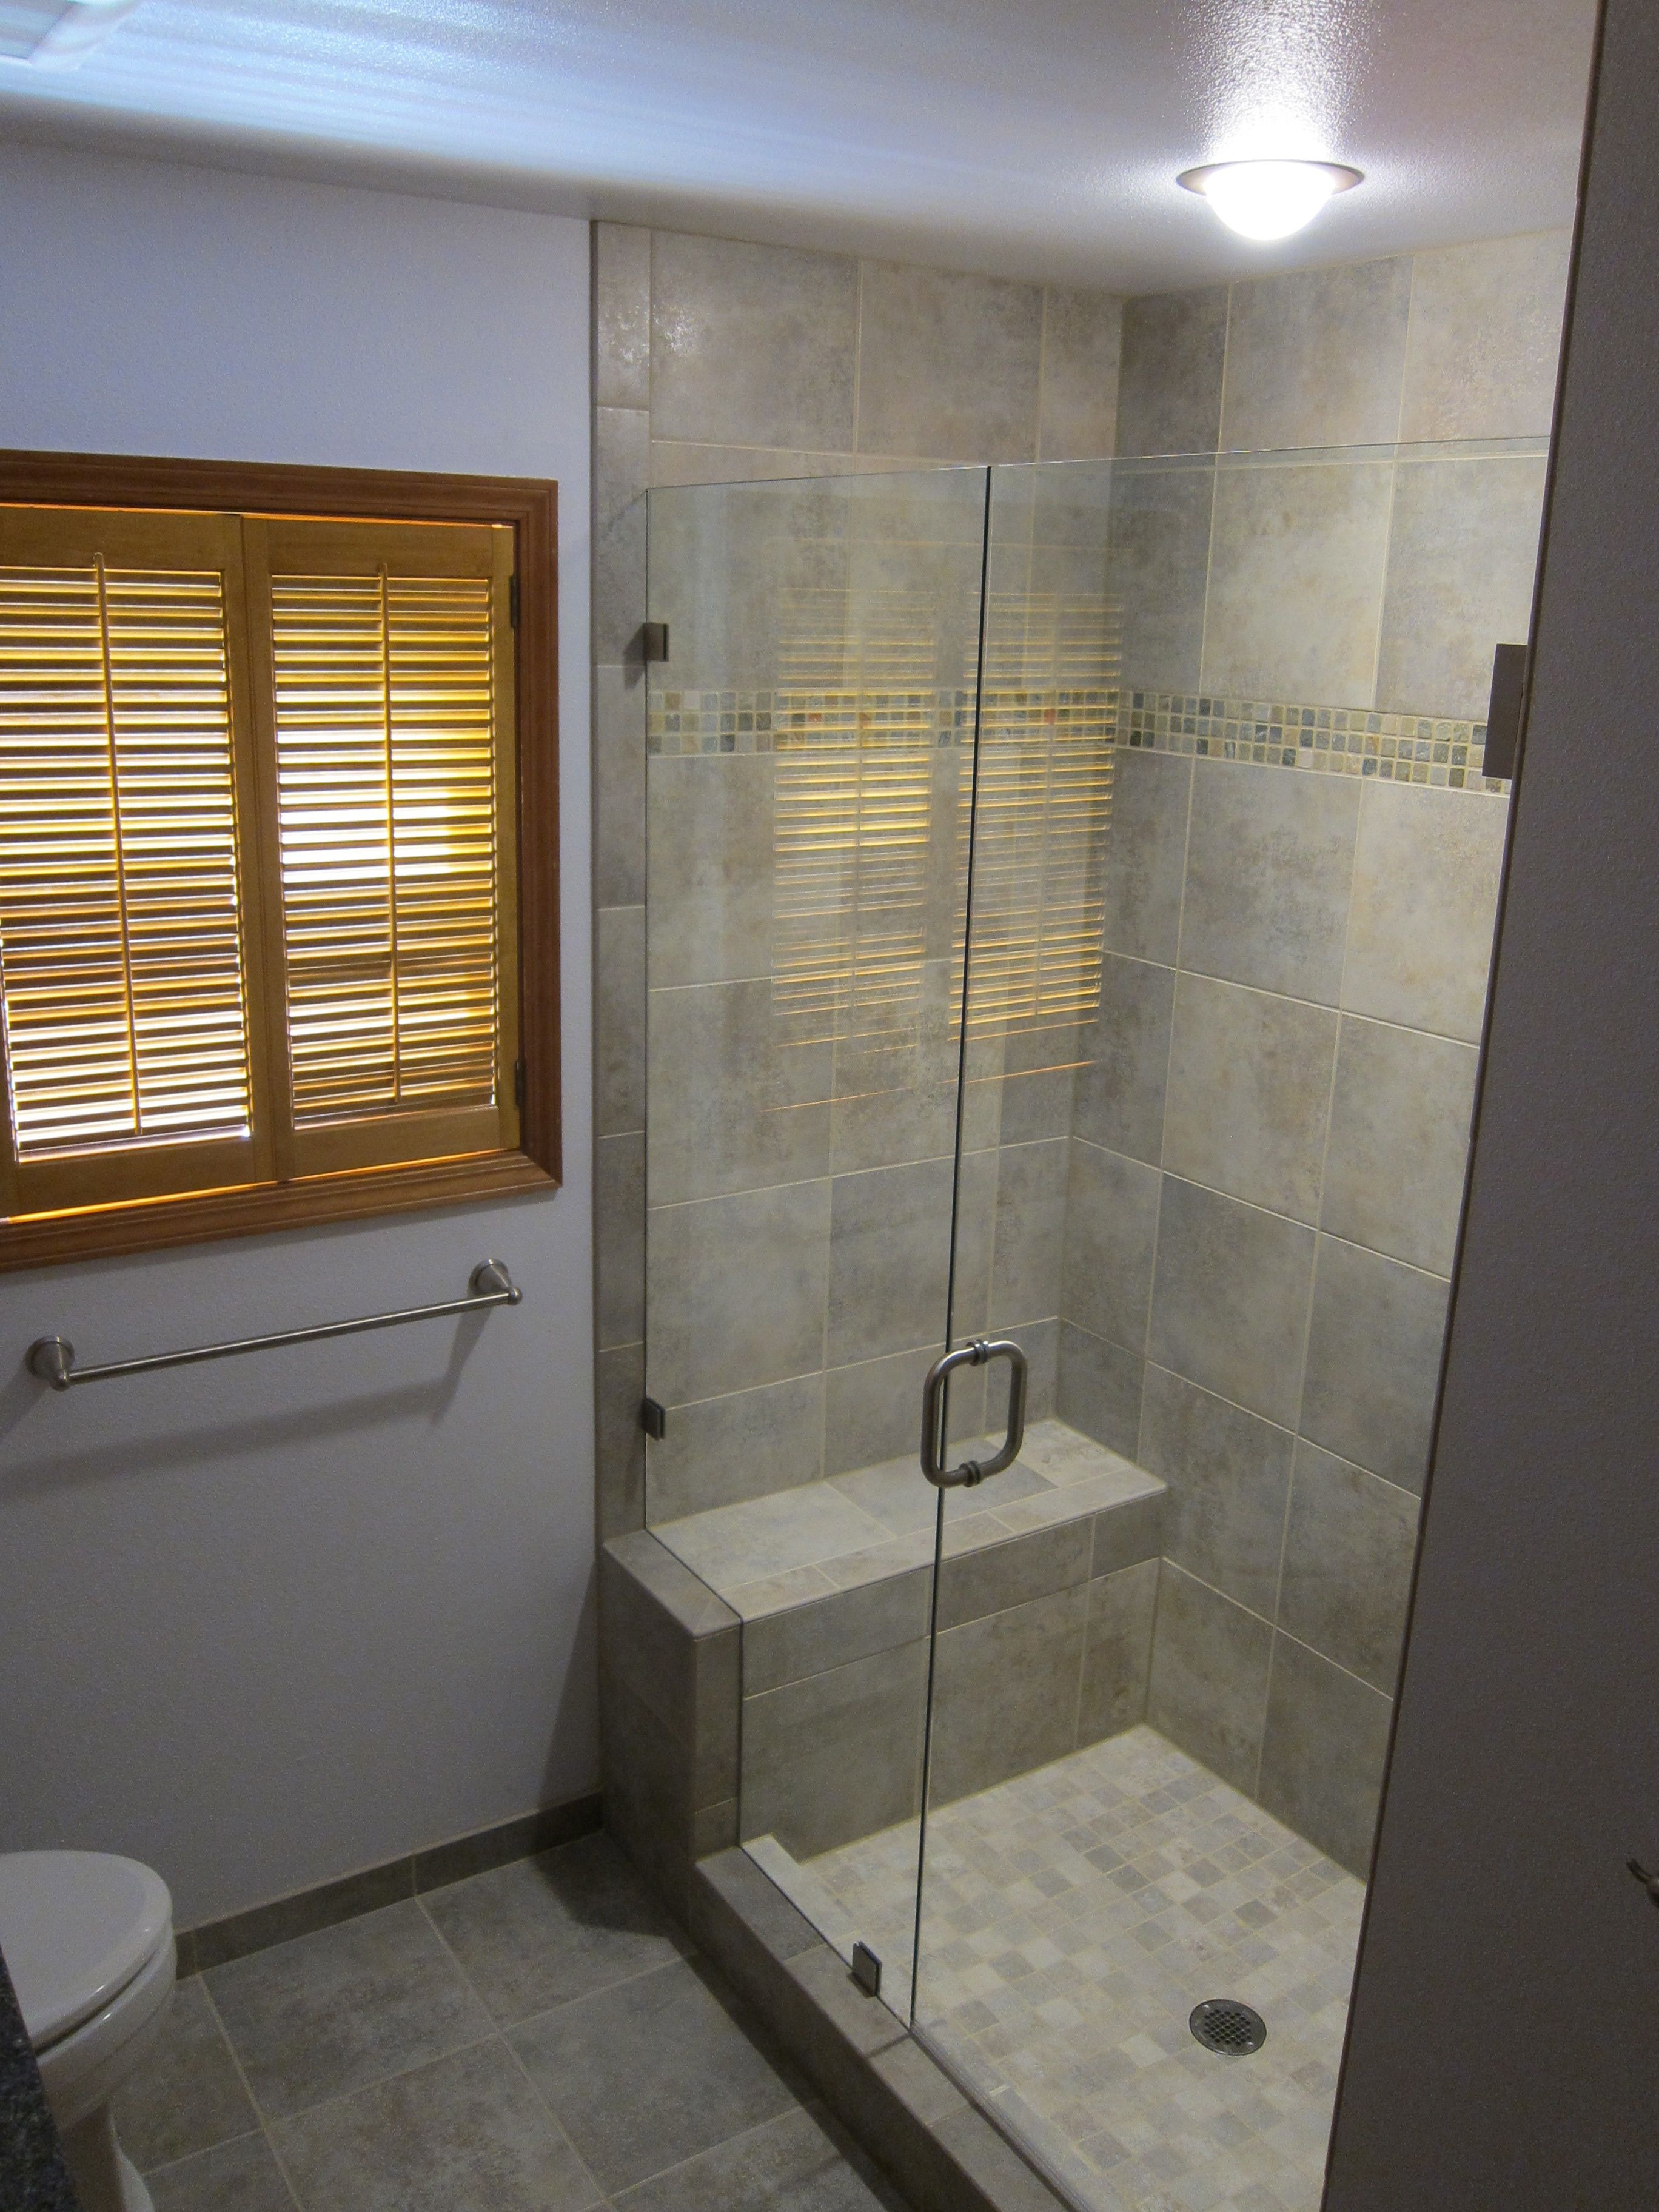 Small Walk In Shower Ideas Inspirational 25 Walk In Showers for Small Bathrooms to Your Ideas and